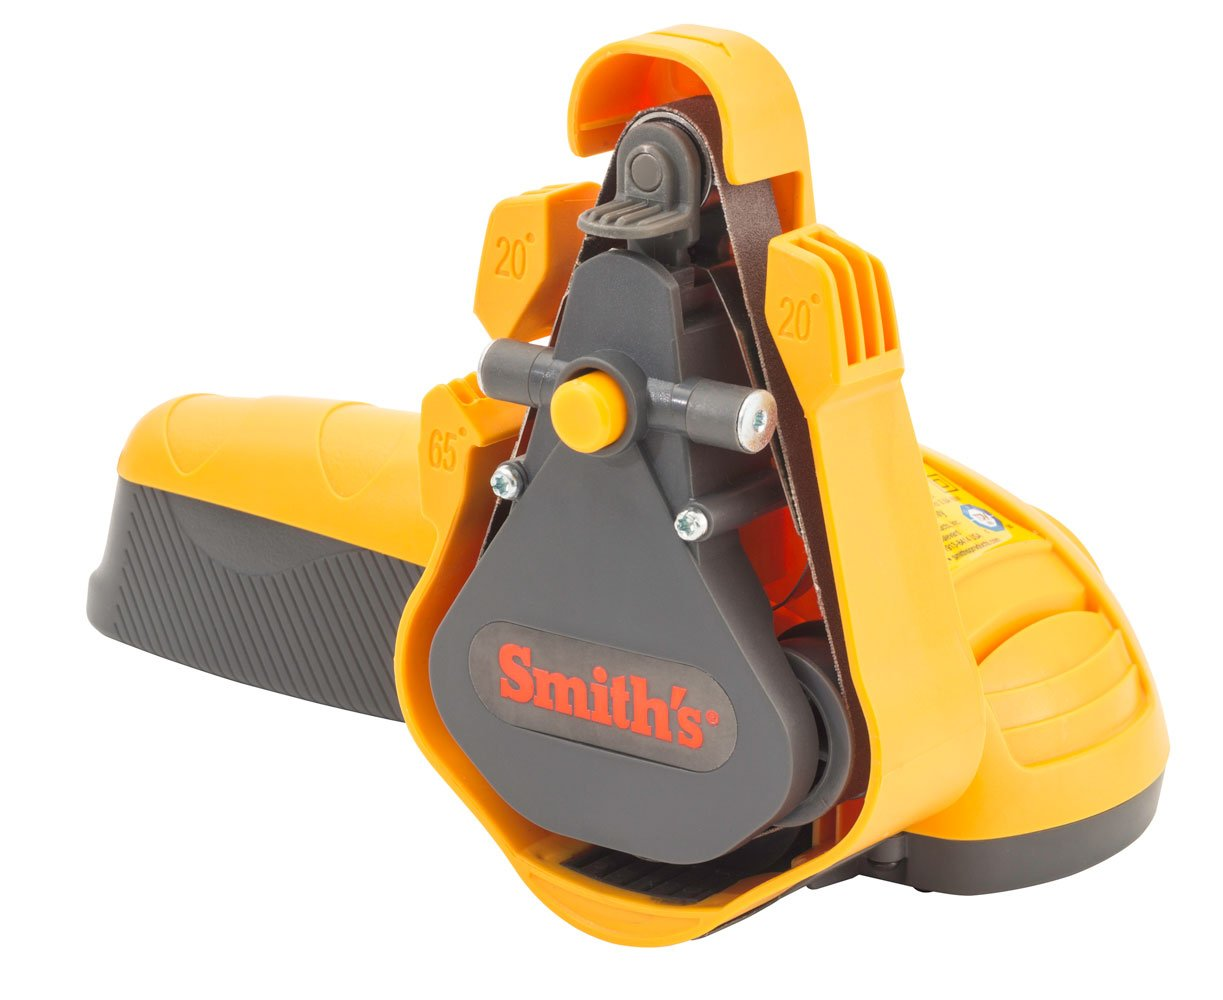 Smith's 50933 Electric Knife and Scissor Sharpener by Smith's